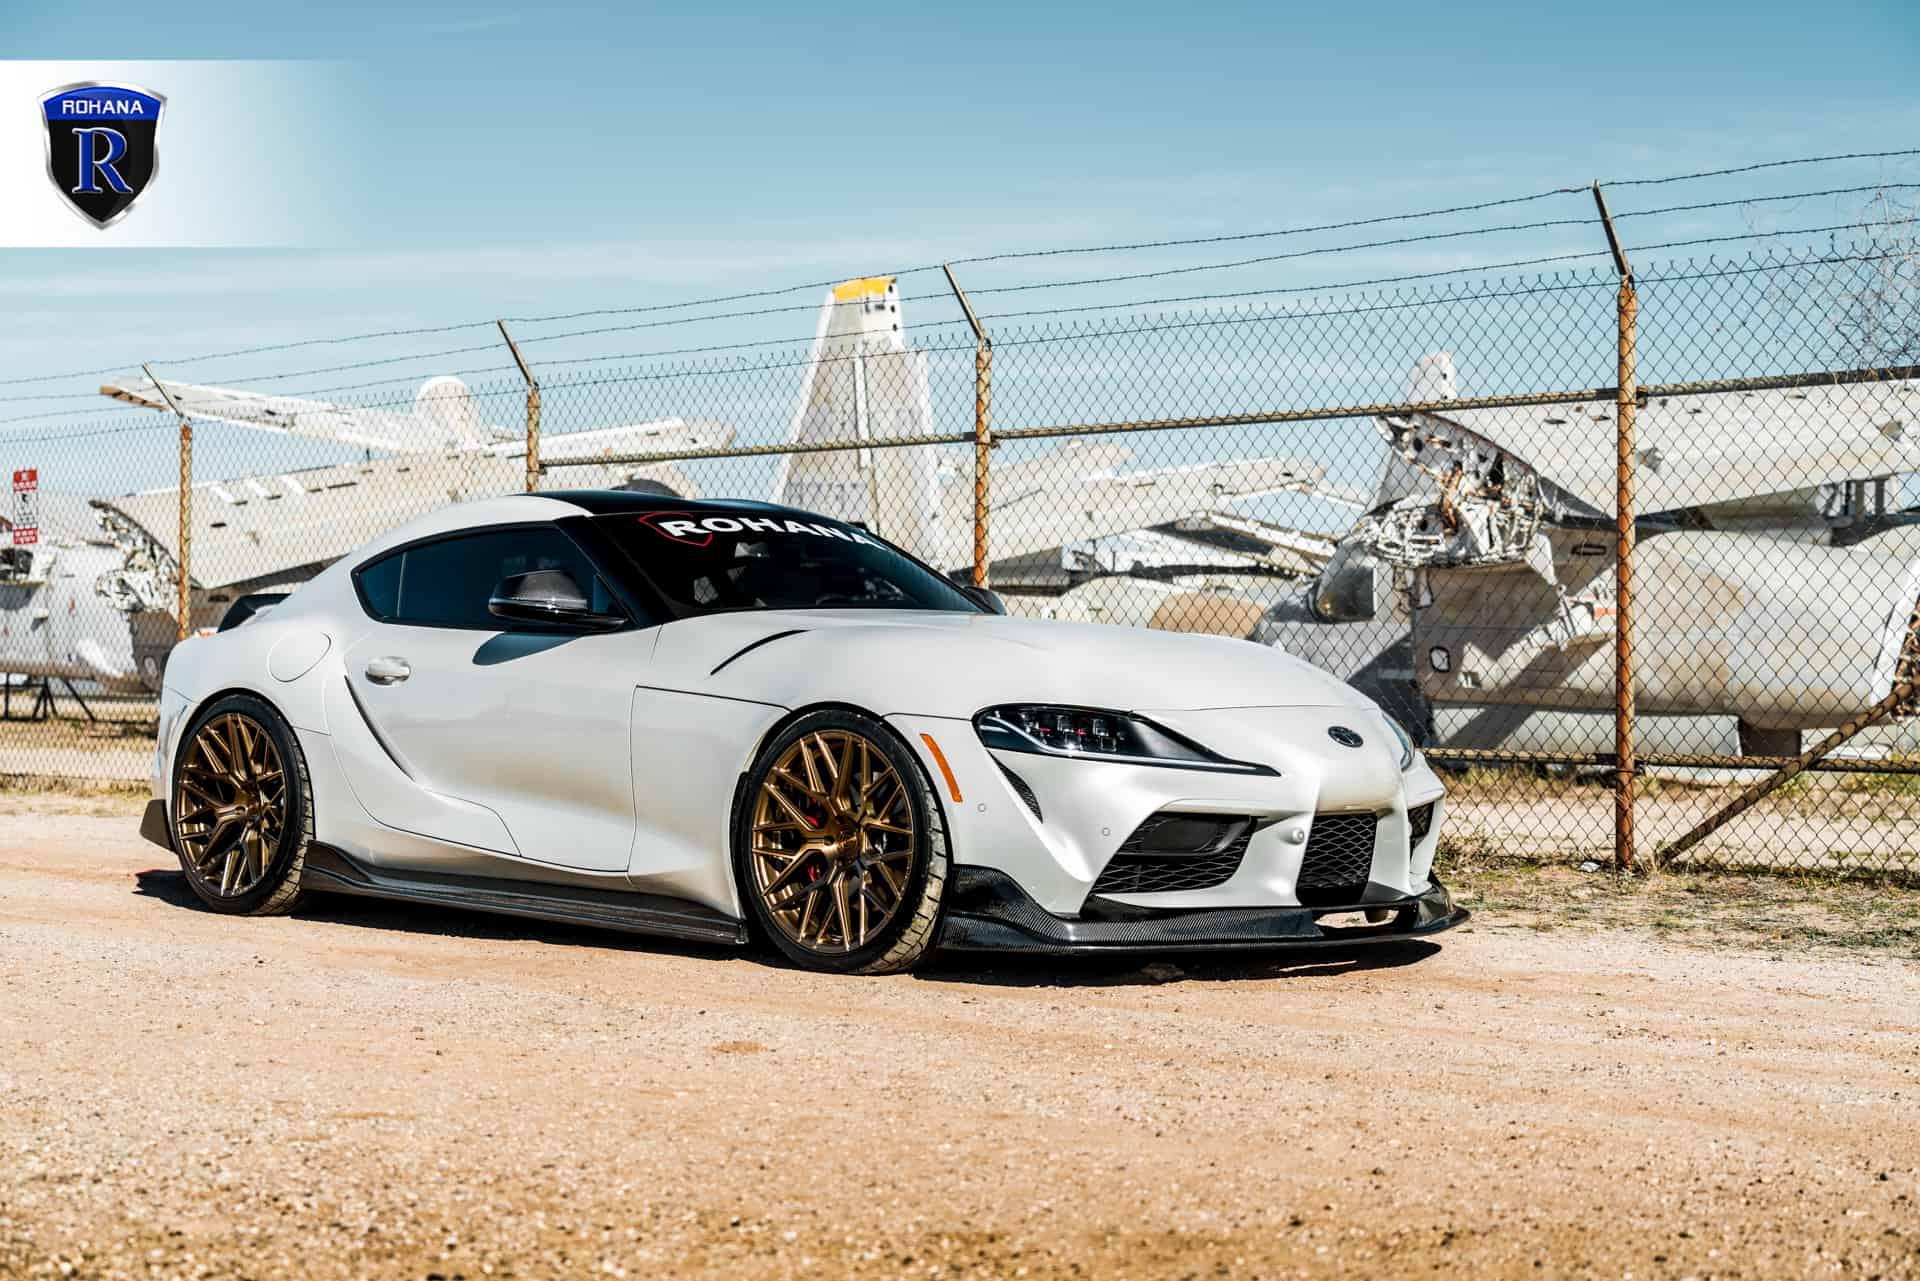 Toyota Supra with AutoTuned S1 lip kit and Rohana wheels